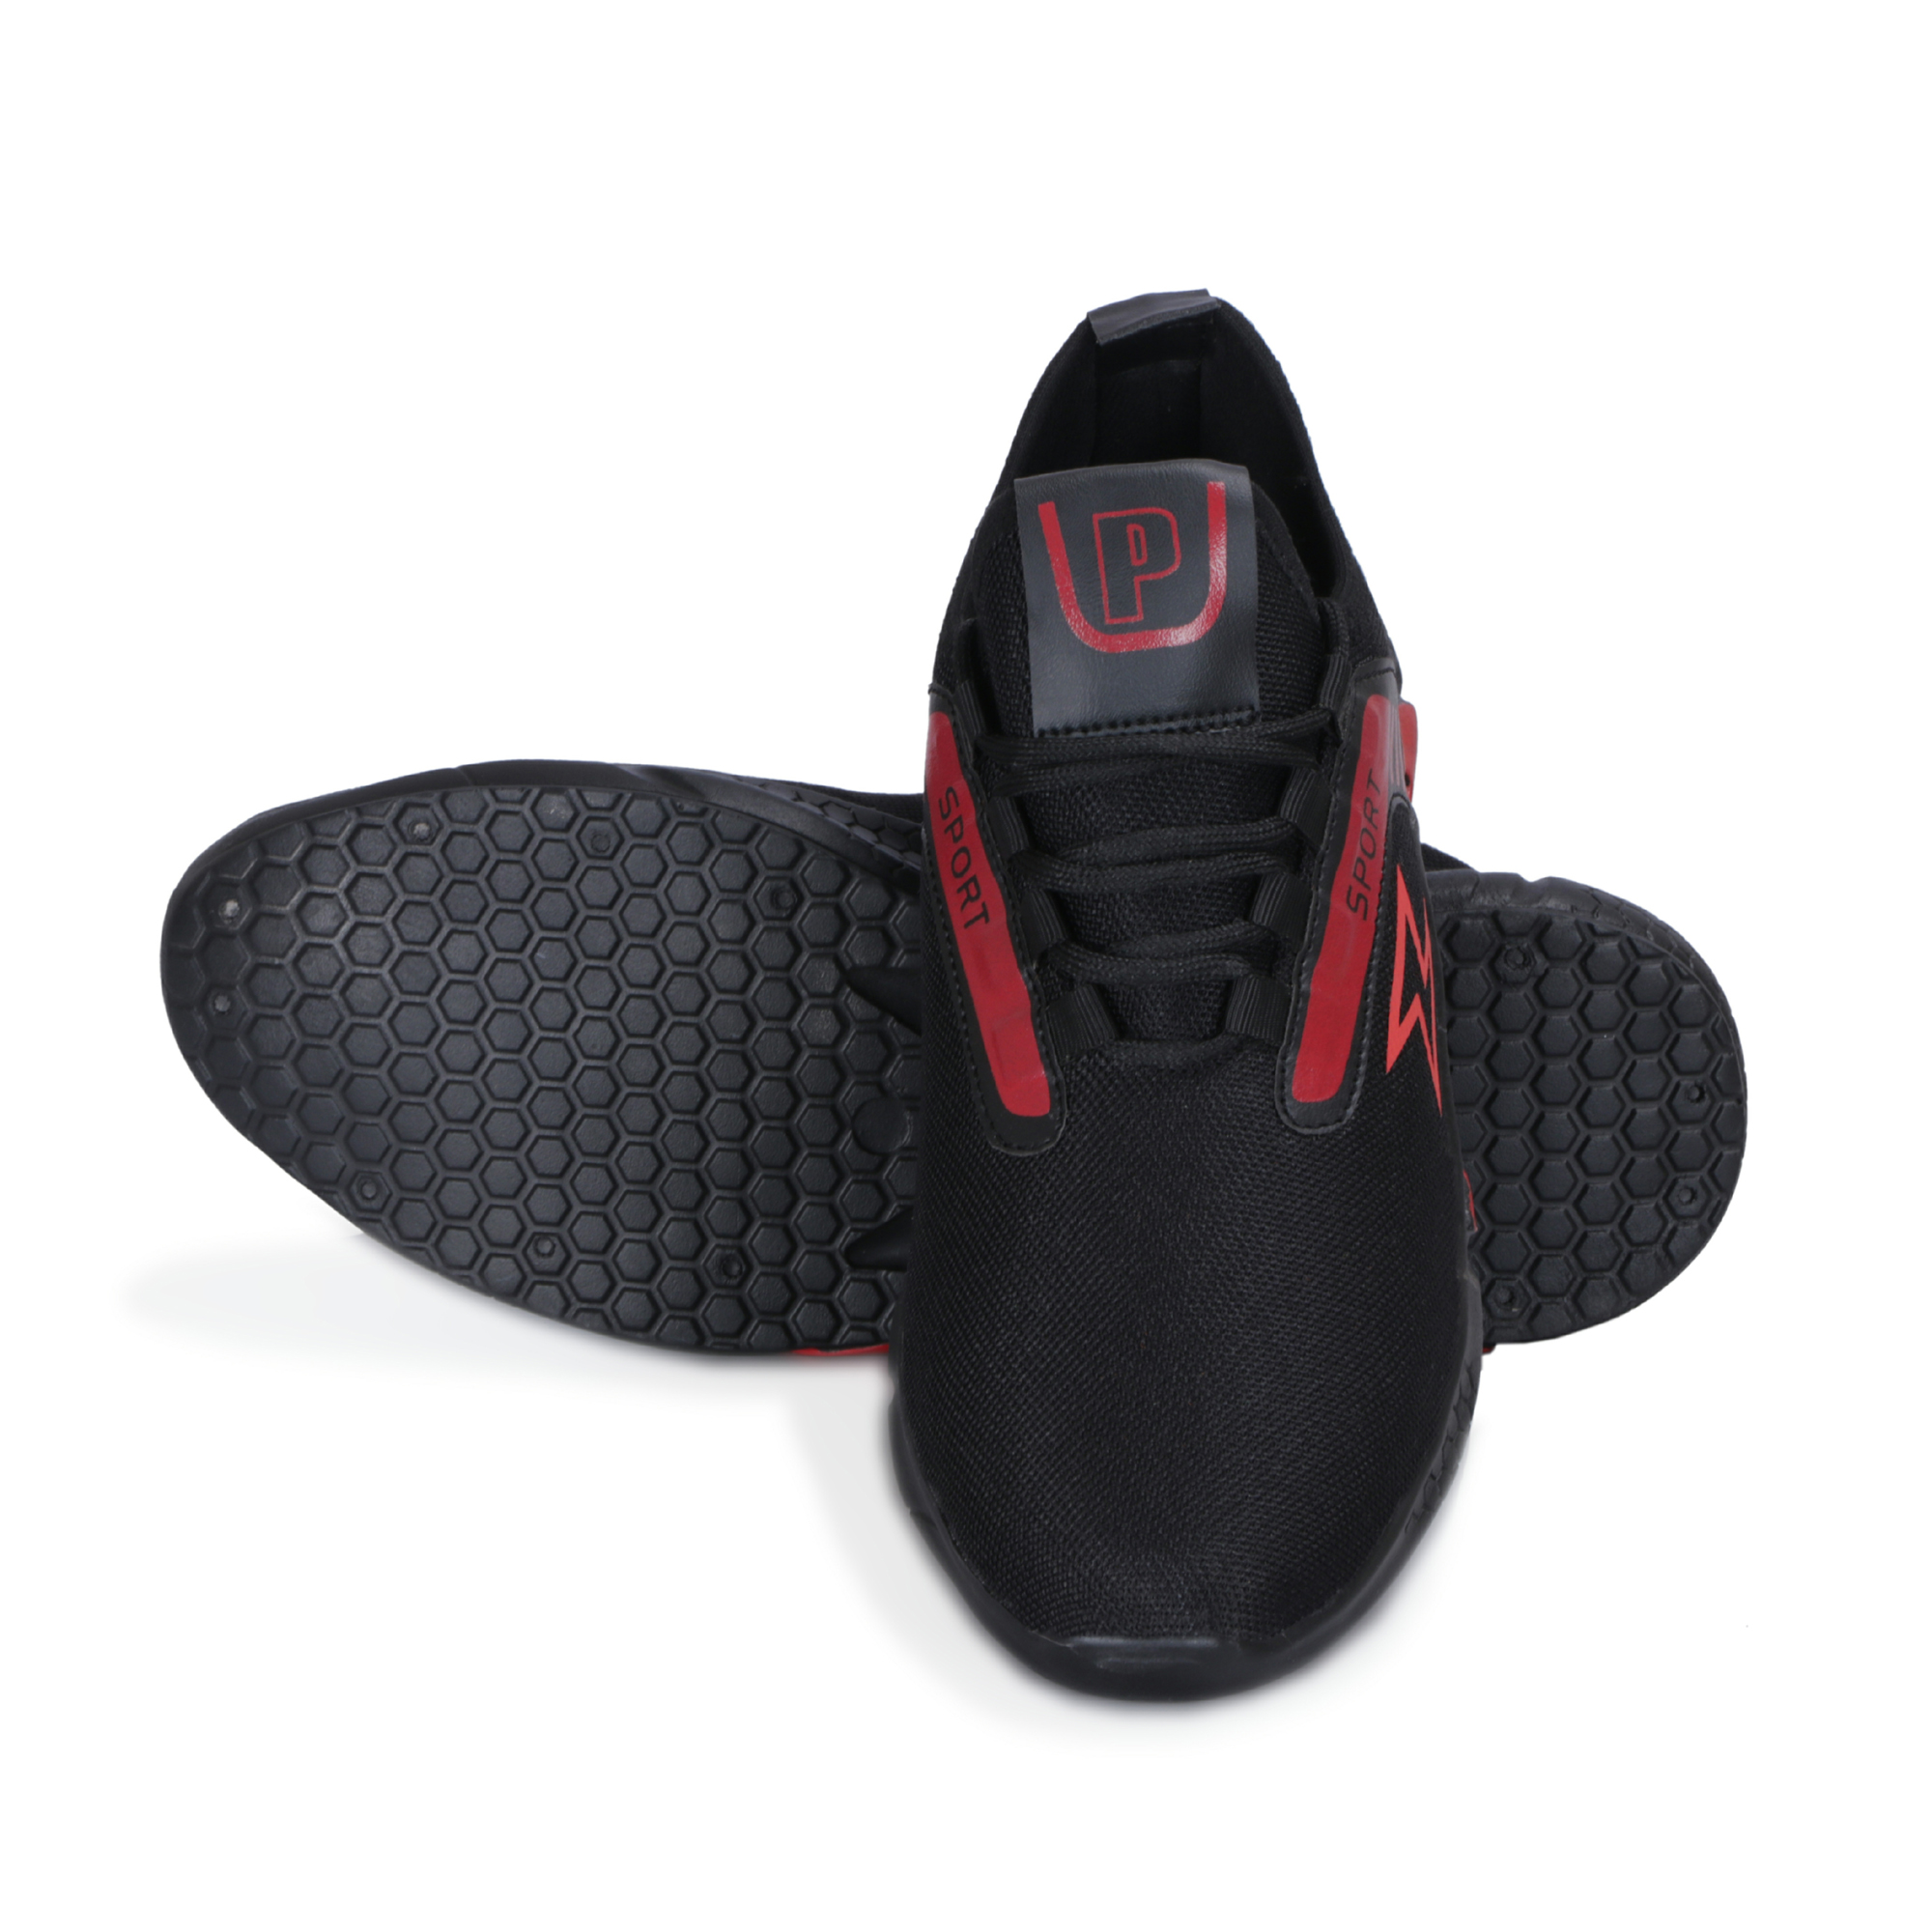 IMCOLUS348.339_RED RUNNING & FANCY MEN'S Sports Shoes SHOES IMCOLUS348.339_RED (RED, 6-9, 4 PAIRS)